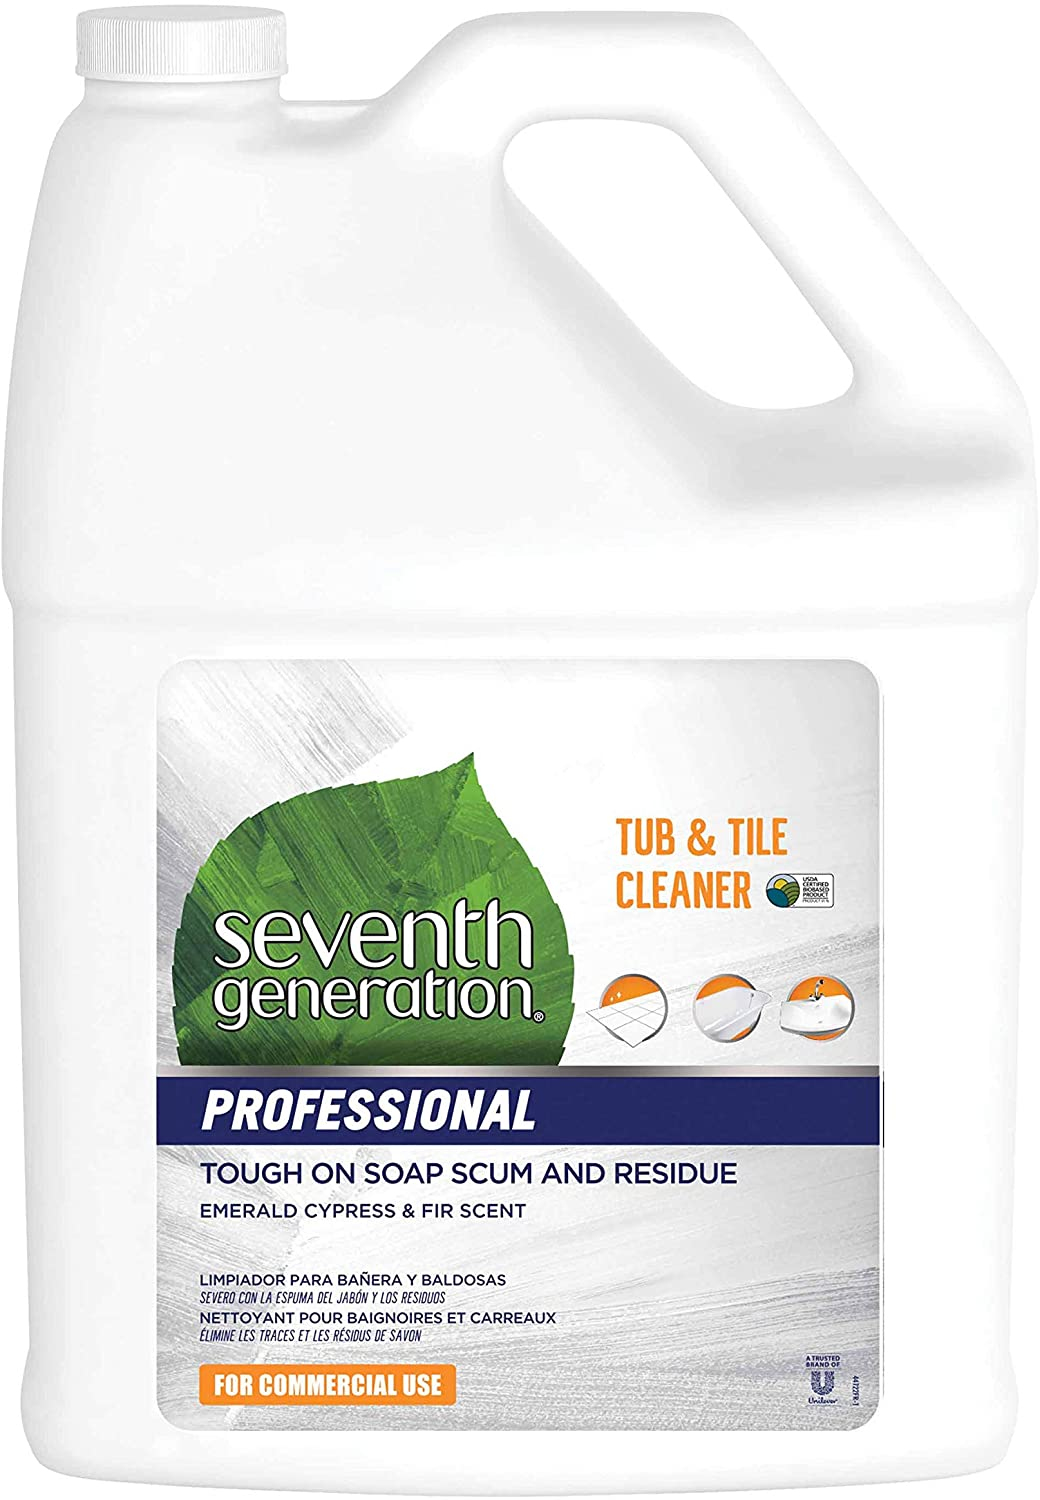 Seventh Generation Professional Tub & Tile Cleaner Refill, Emerald Cypress & Fir Scent, Biodegradable, 128 fl oz (Pack of 2)